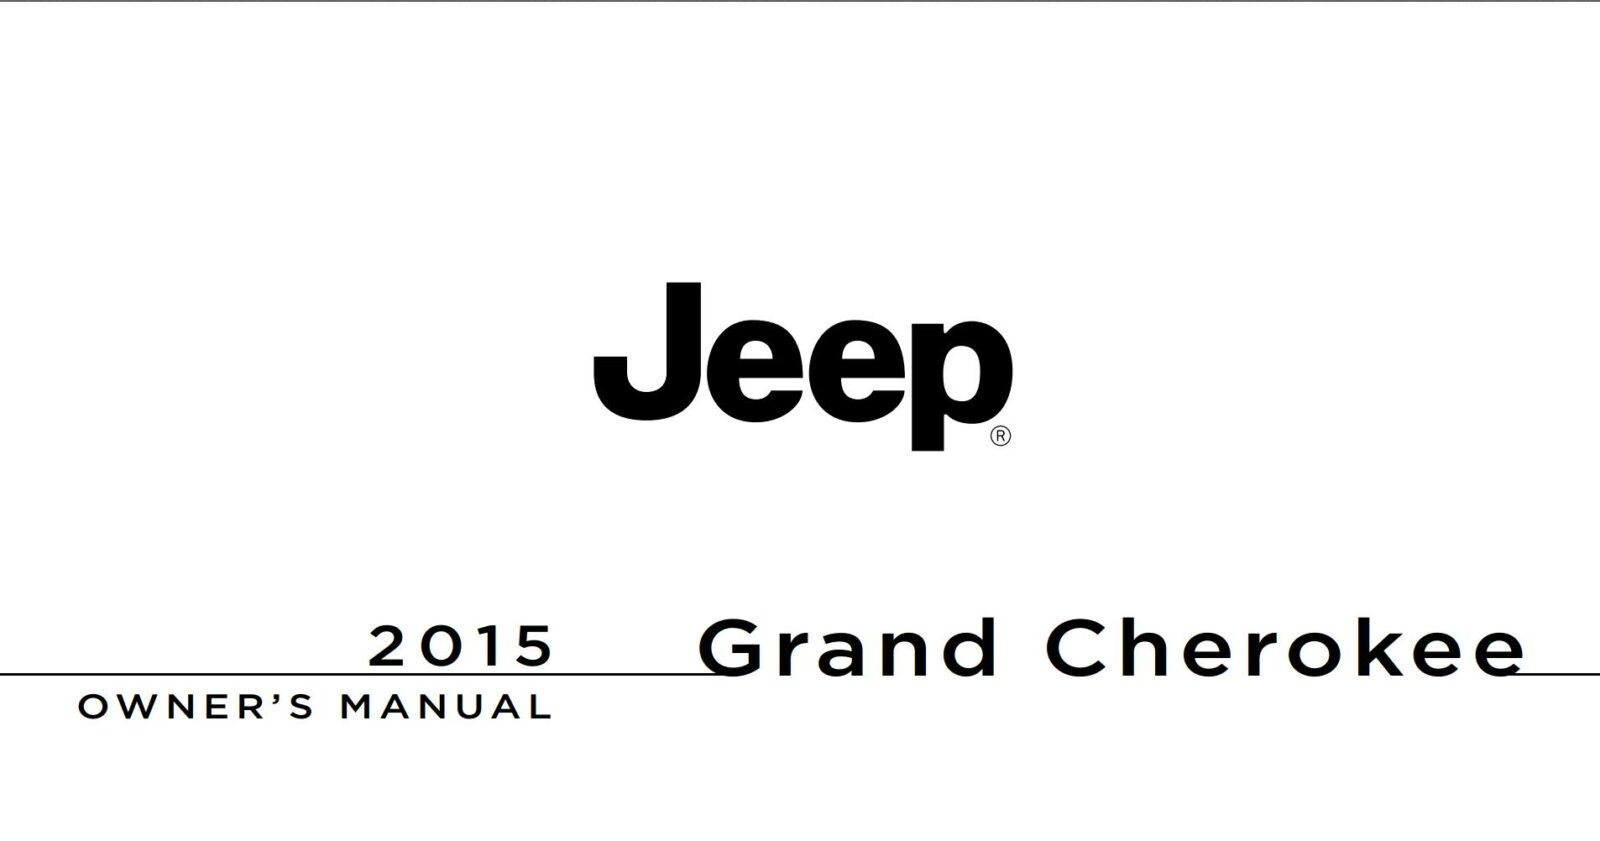 Jeep Grand Cherokee 2015 Owner's Manual